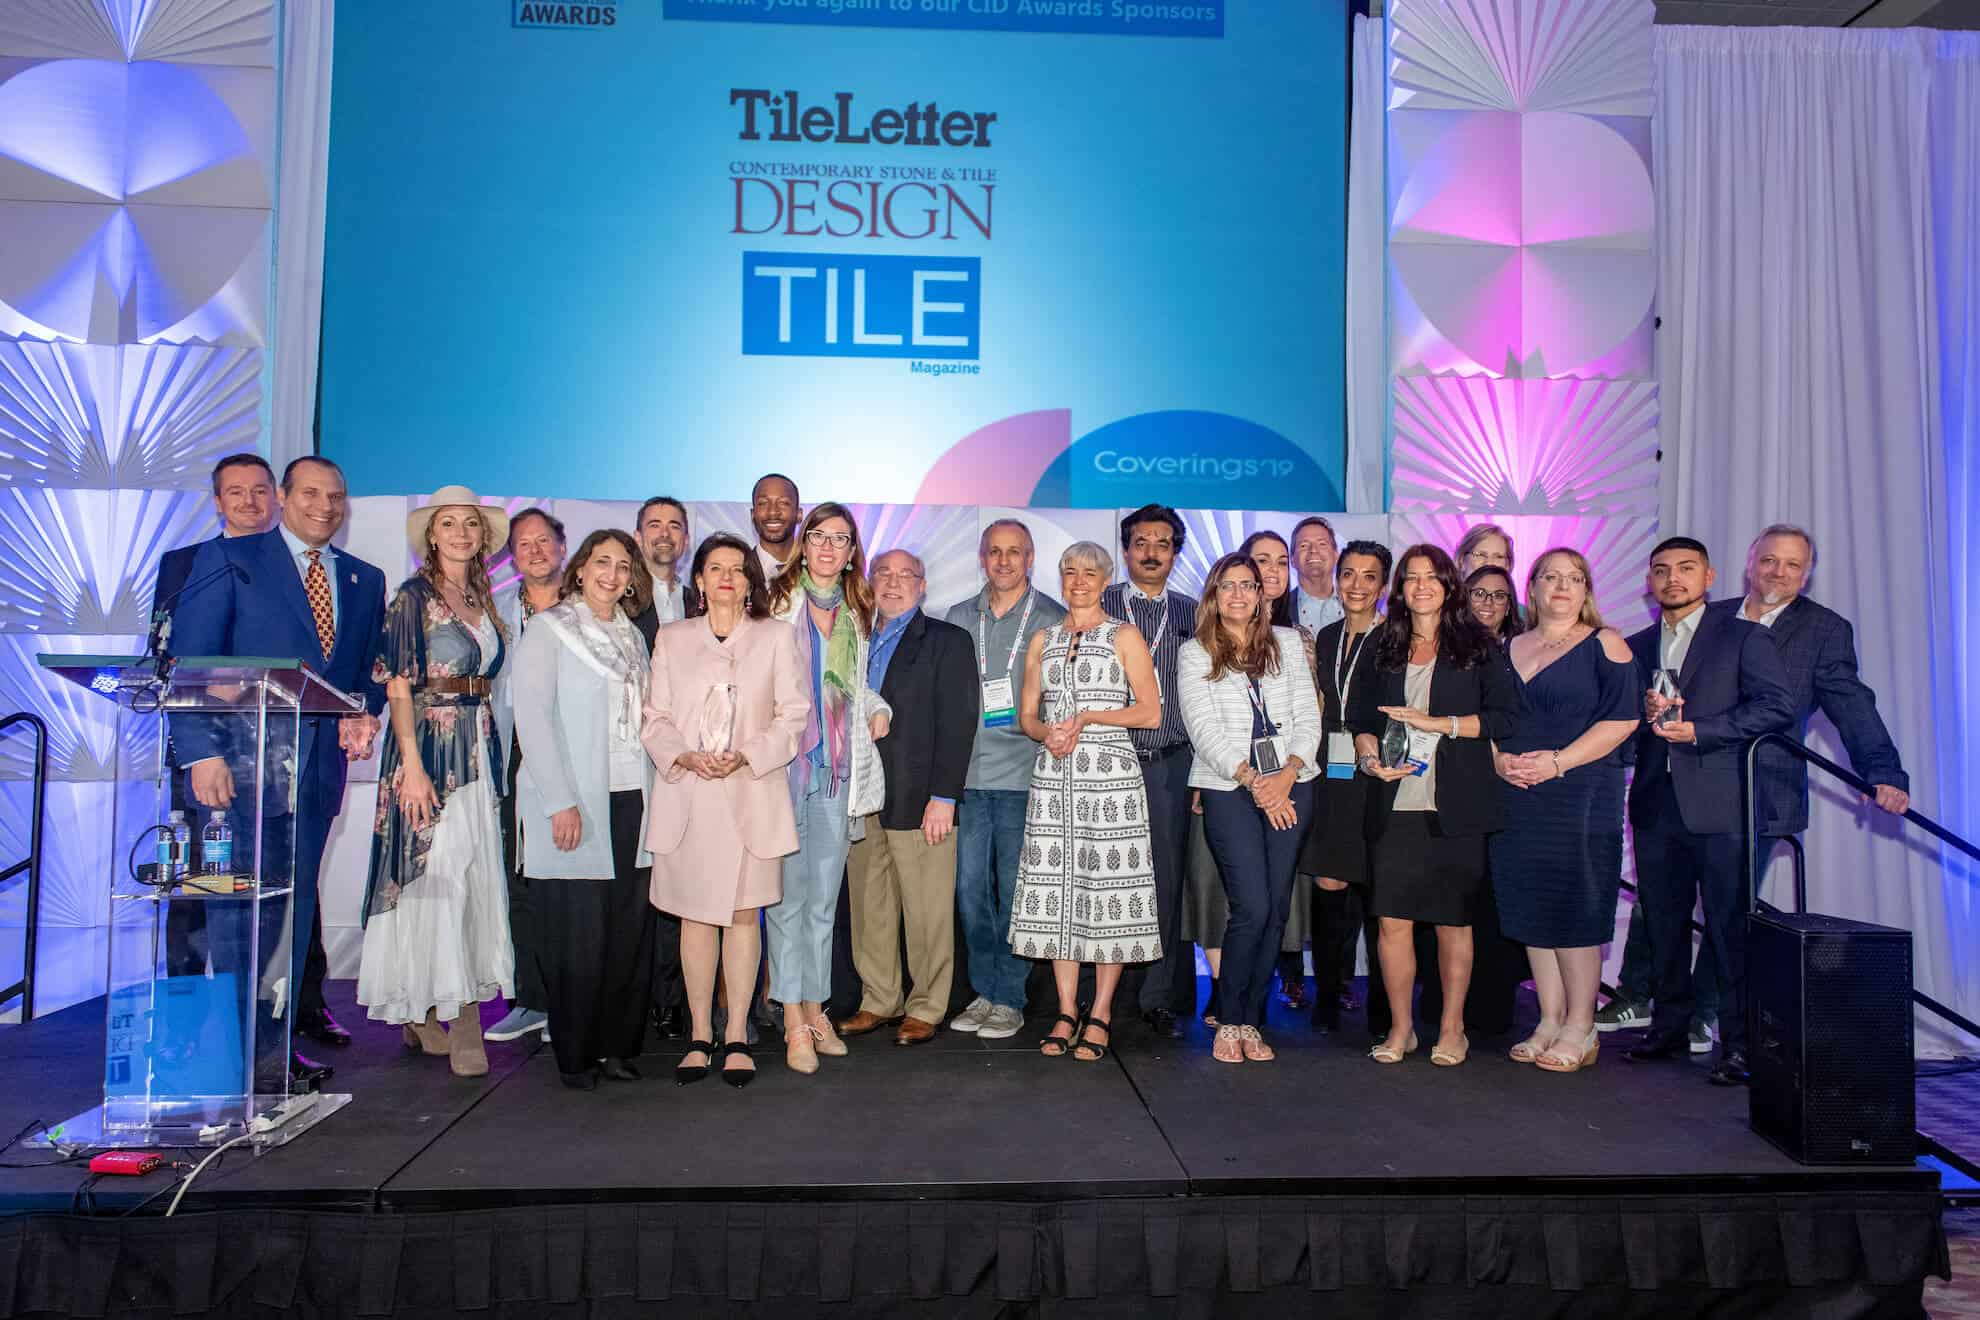 Coverings Installation Design Awards Announce 2019 Winners Coverings 2021